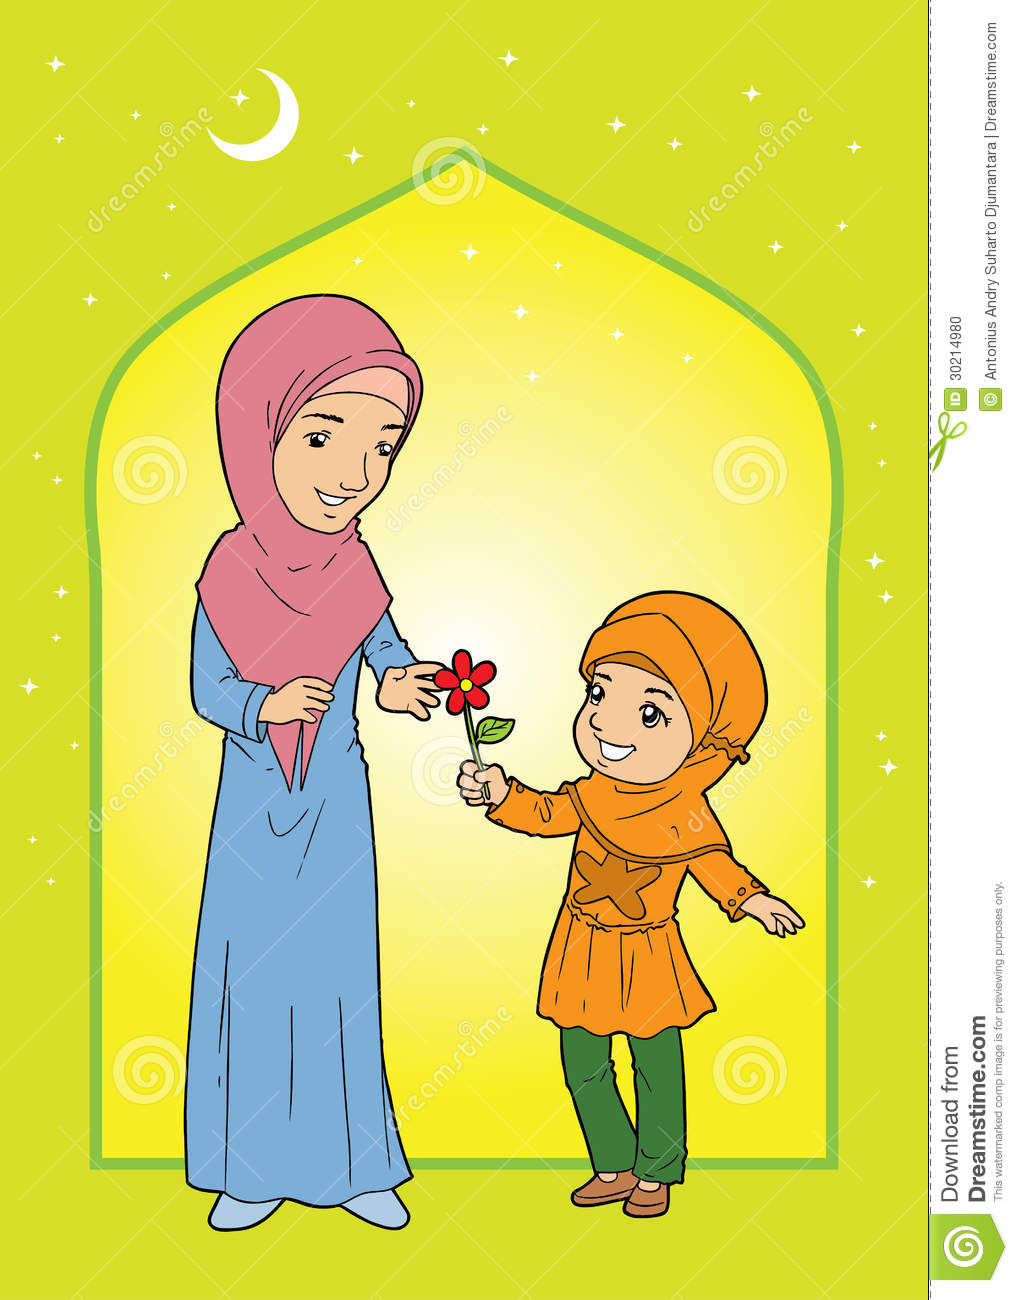 united states map with Stock Photo Muslim Daughter Giving Mother Flower Head Scarf Image30214980 on Stock Photography Contents Title Design Image1994492 likewise File Gold Quartz 188388 together with 1160472 furthermore File USA Deep South likewise File Steag Romania.